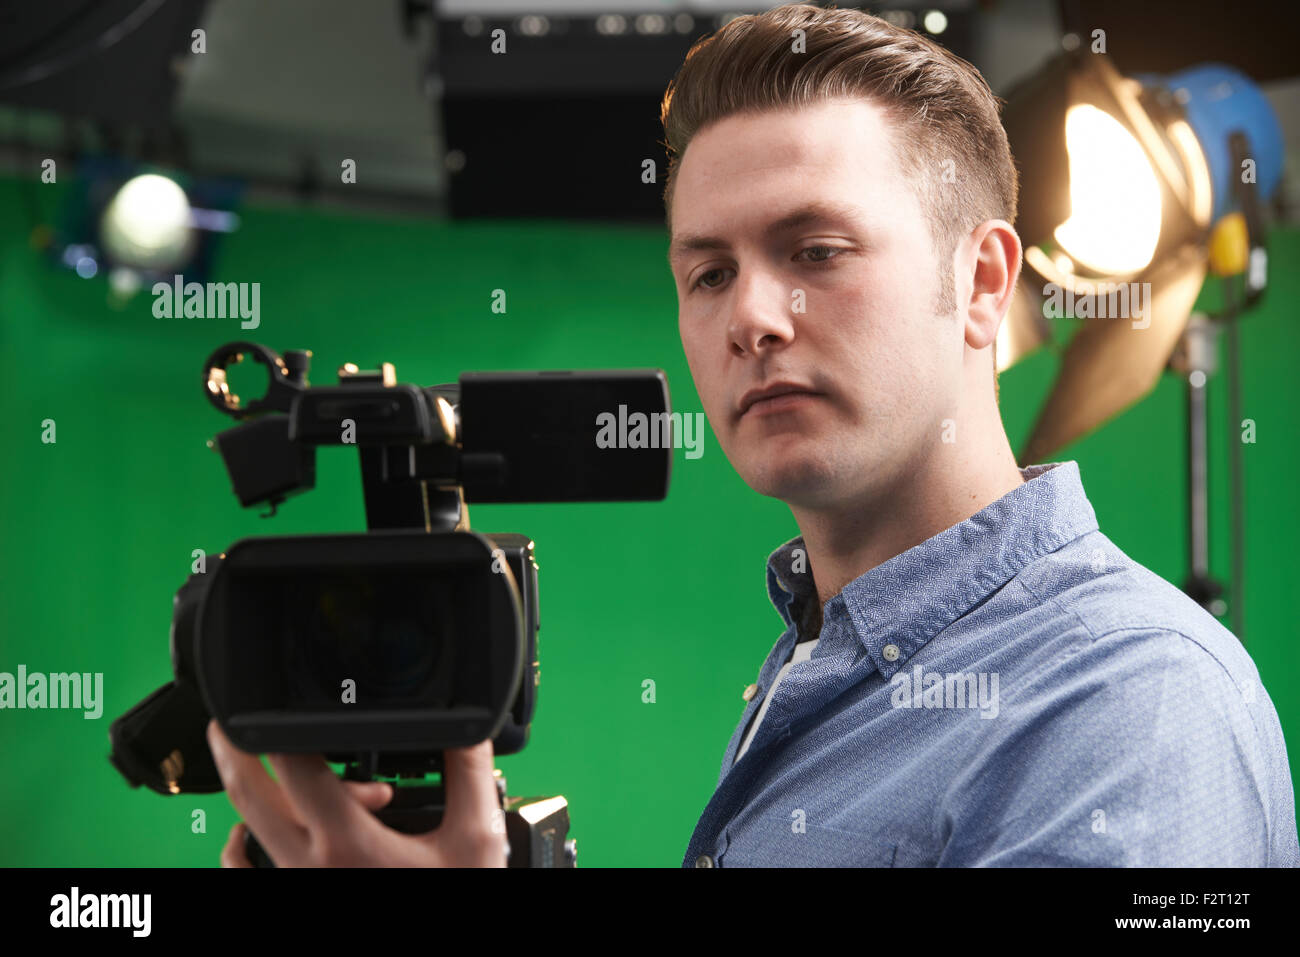 Cameraman Working In Television Studio - Stock Image